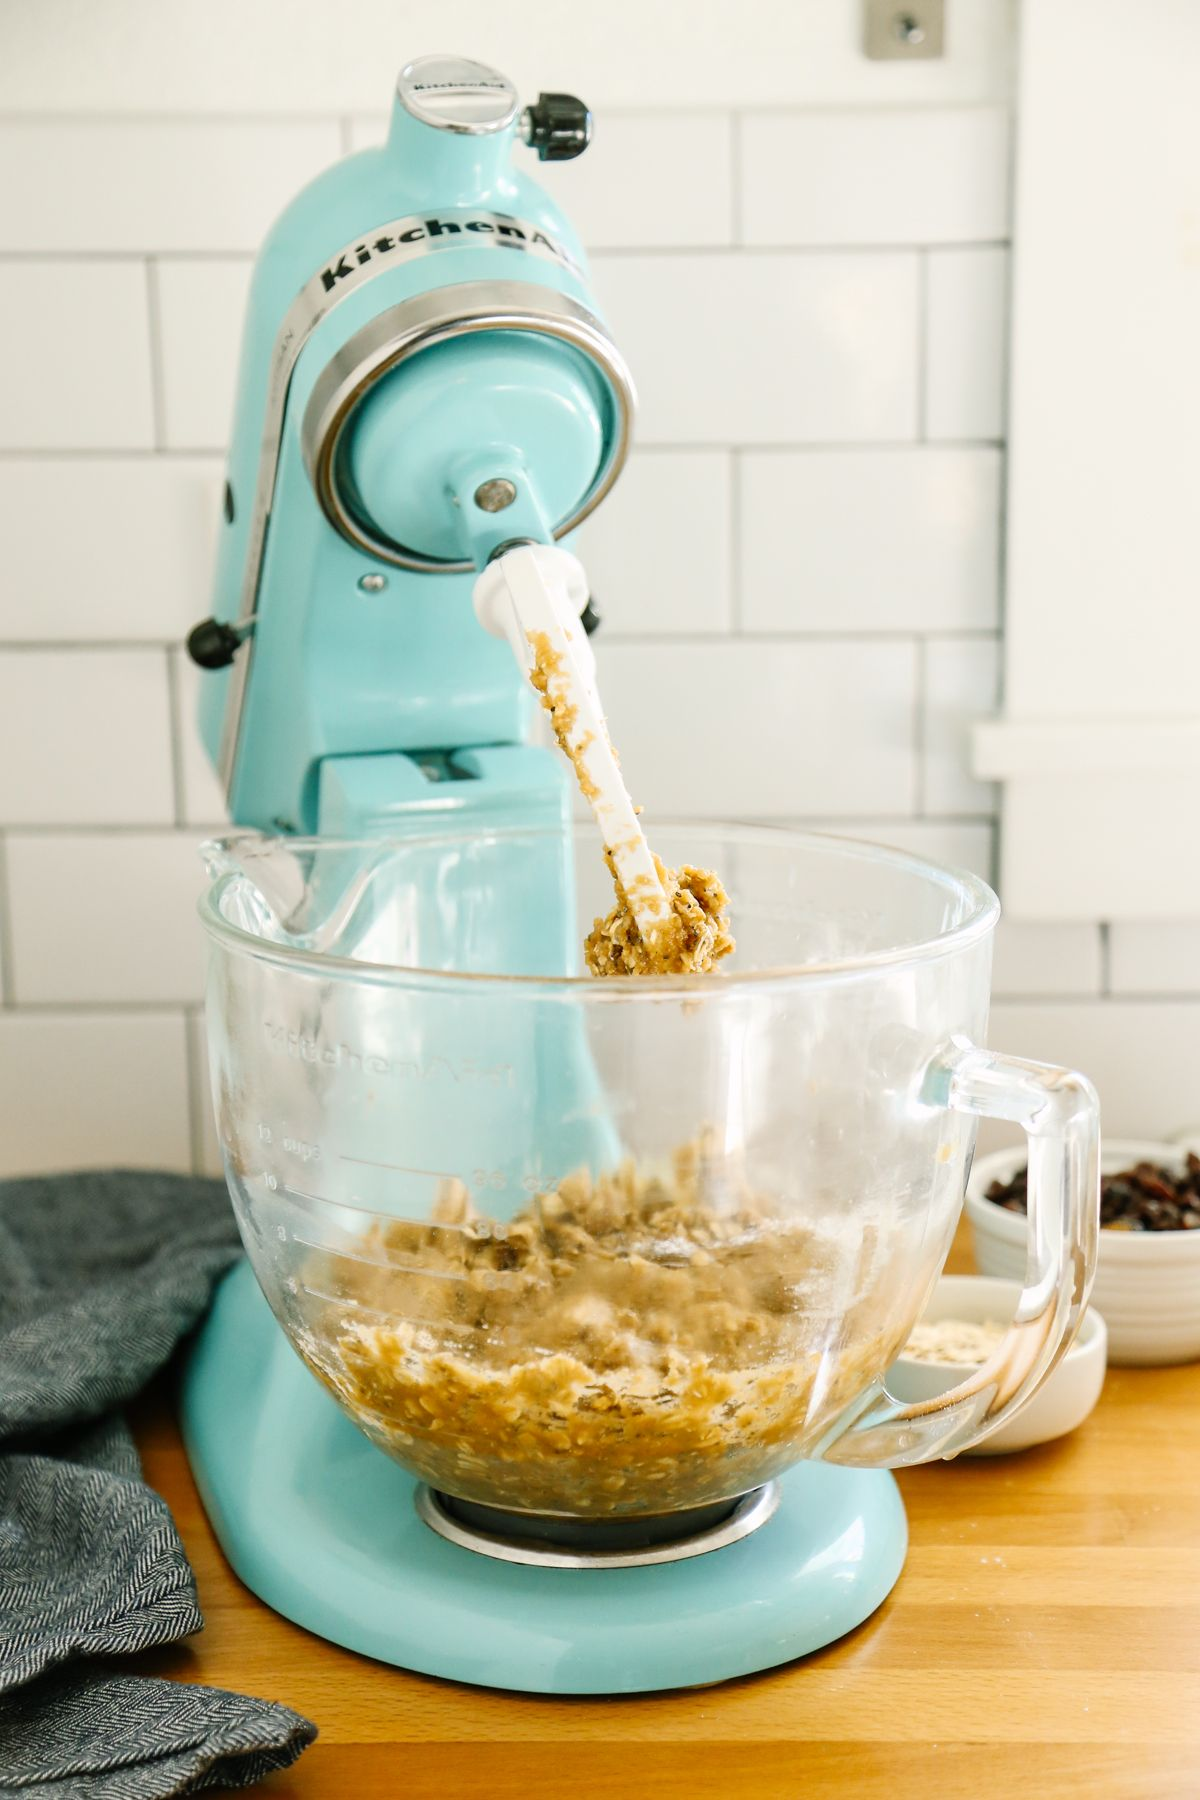 Simplify Busy Mornings With Healthy Make Ahead Oat And